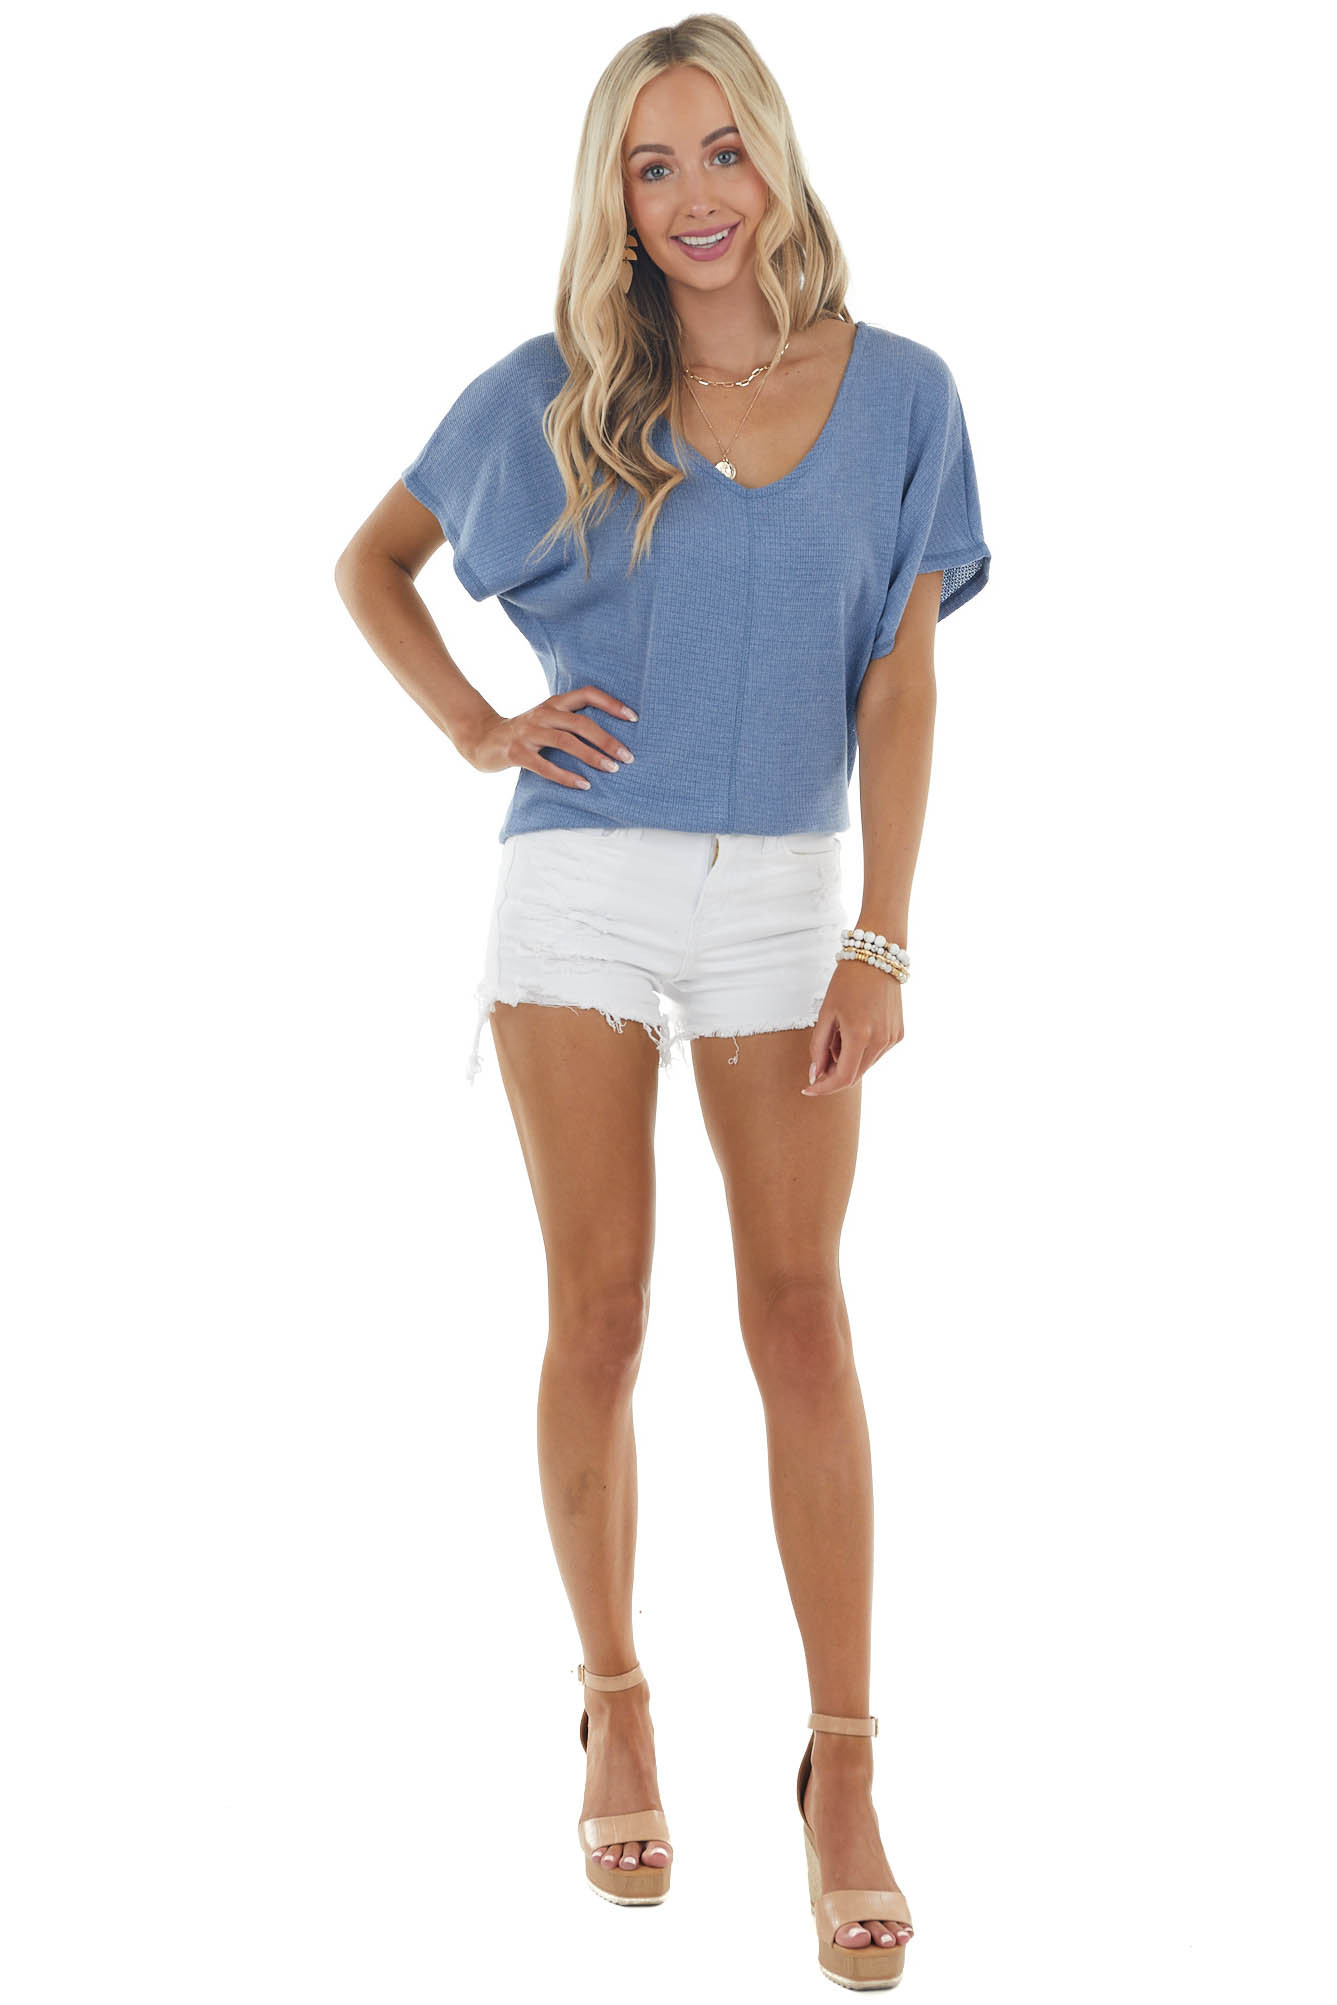 Ocean Blue Short Dolman Sleeve Knit Top with Cut Out Detail